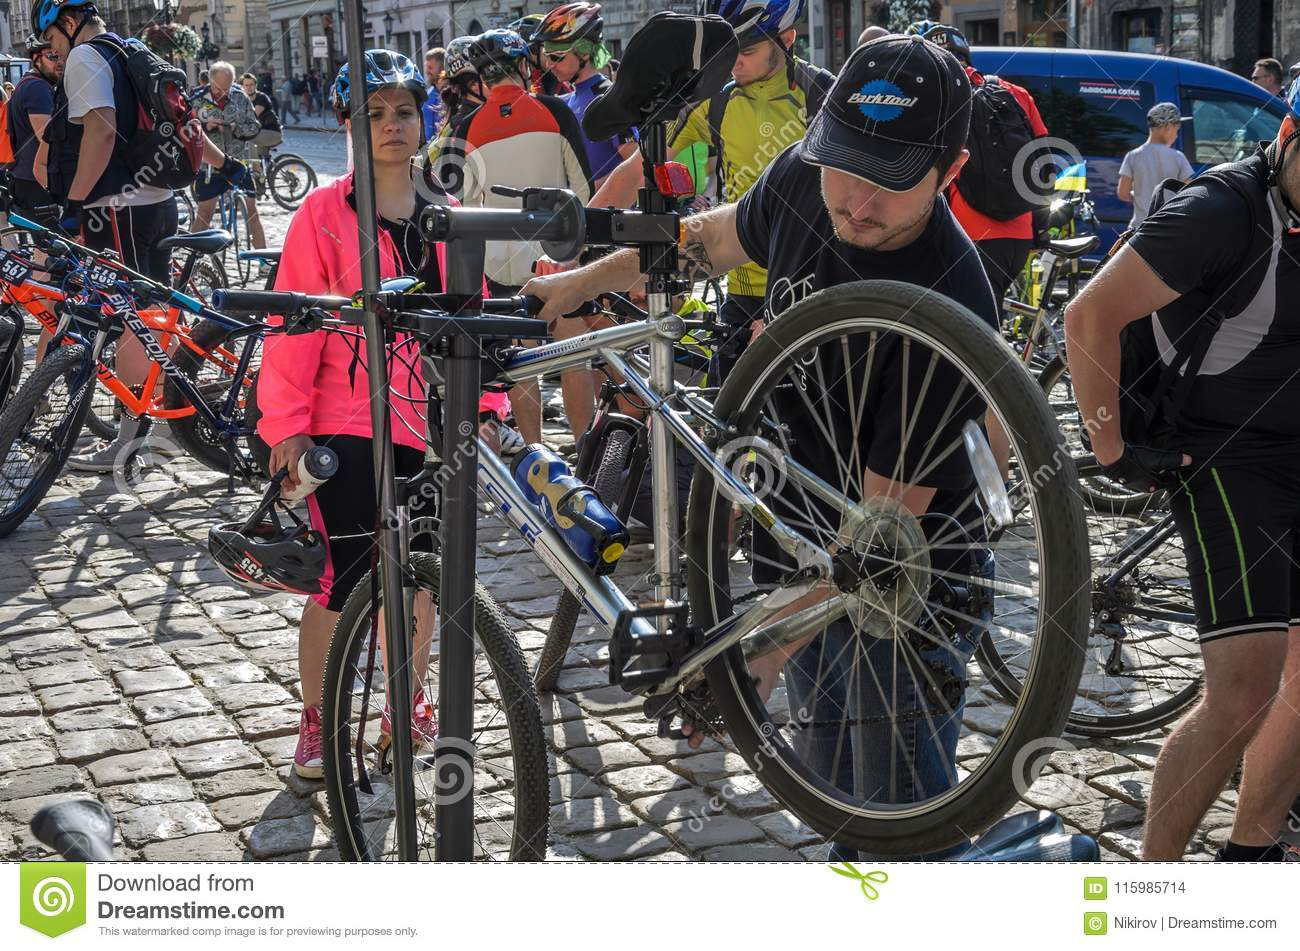 LVIV, UKRAINE - MAY 2018: The cyclist repairs his bicycle by pumping a punctured wheel